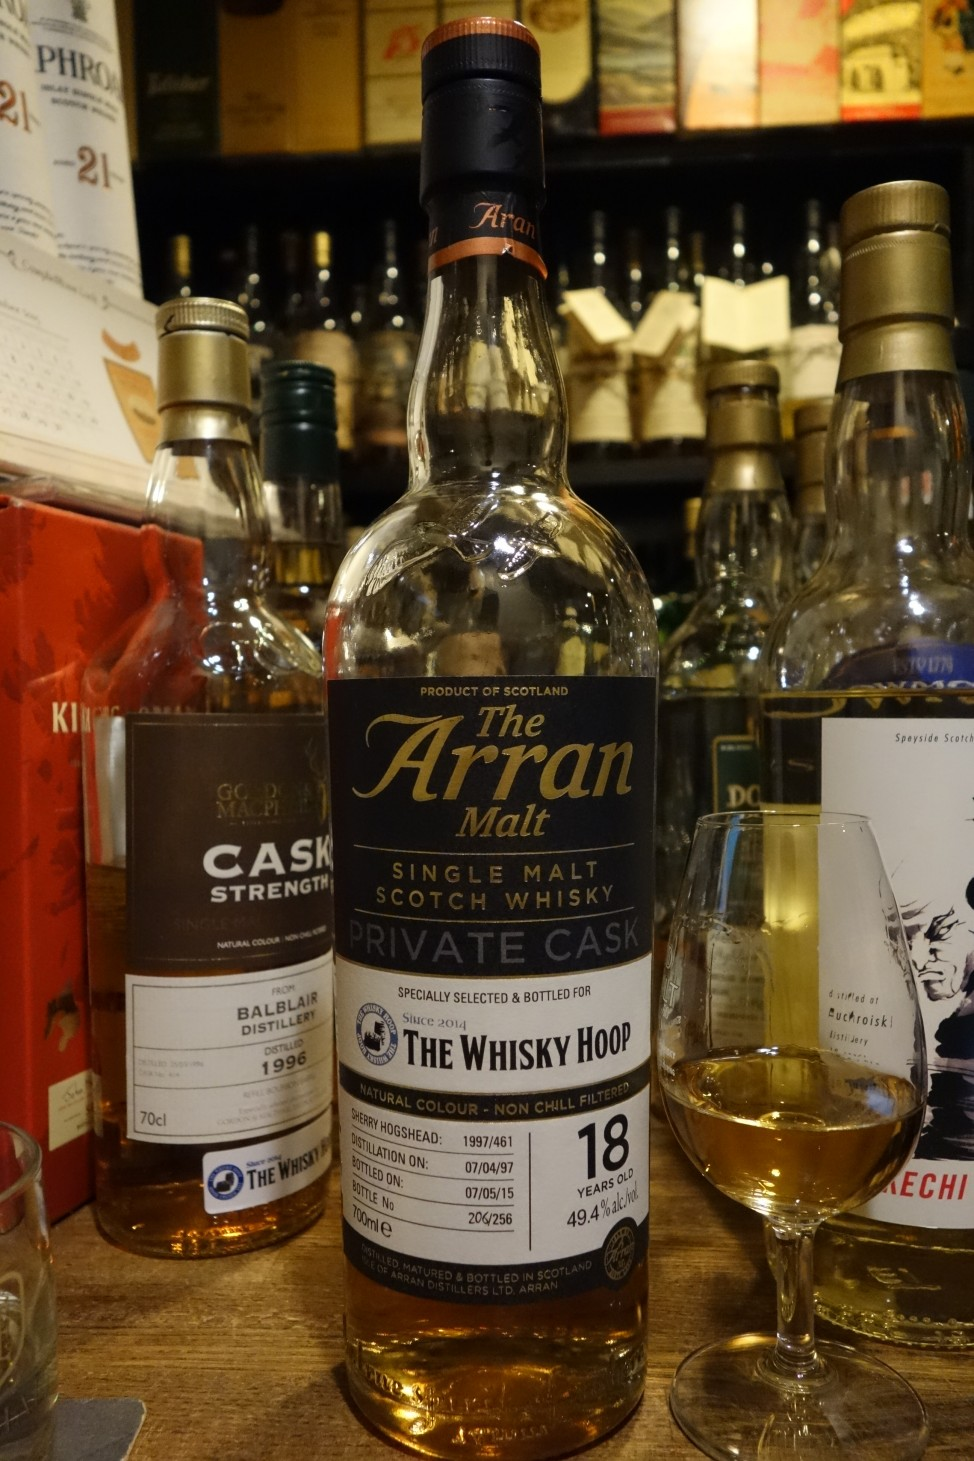 ISLE OF ARRAN 1997-2015 18yo OB PRIVATE CASK for THE WHISKY HOOP #1997/461